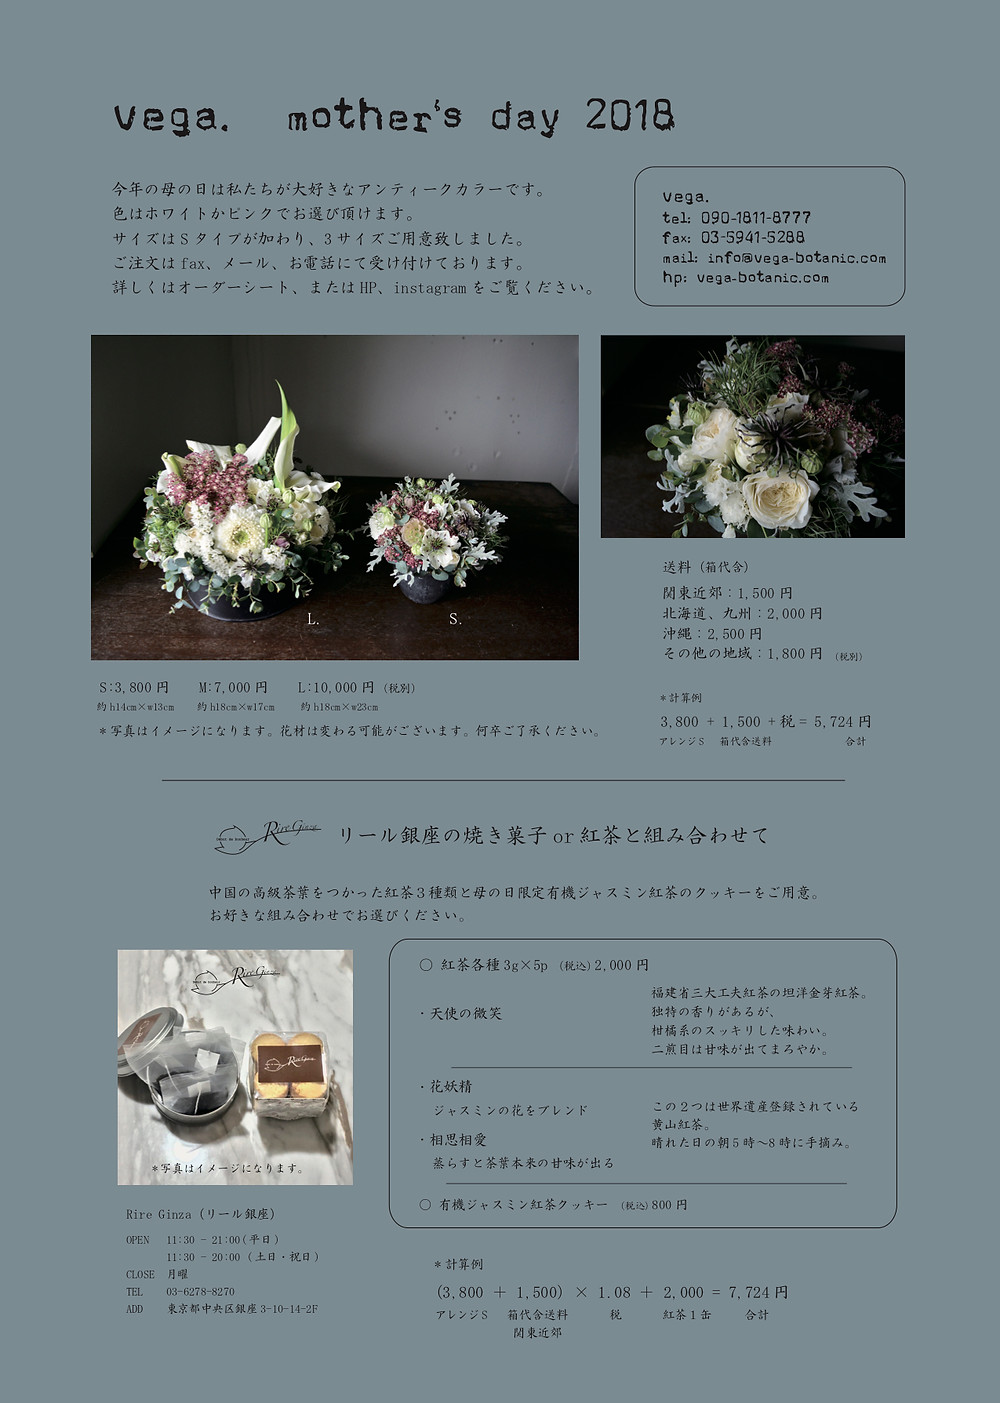 vega. mothers day 2018 ご案内